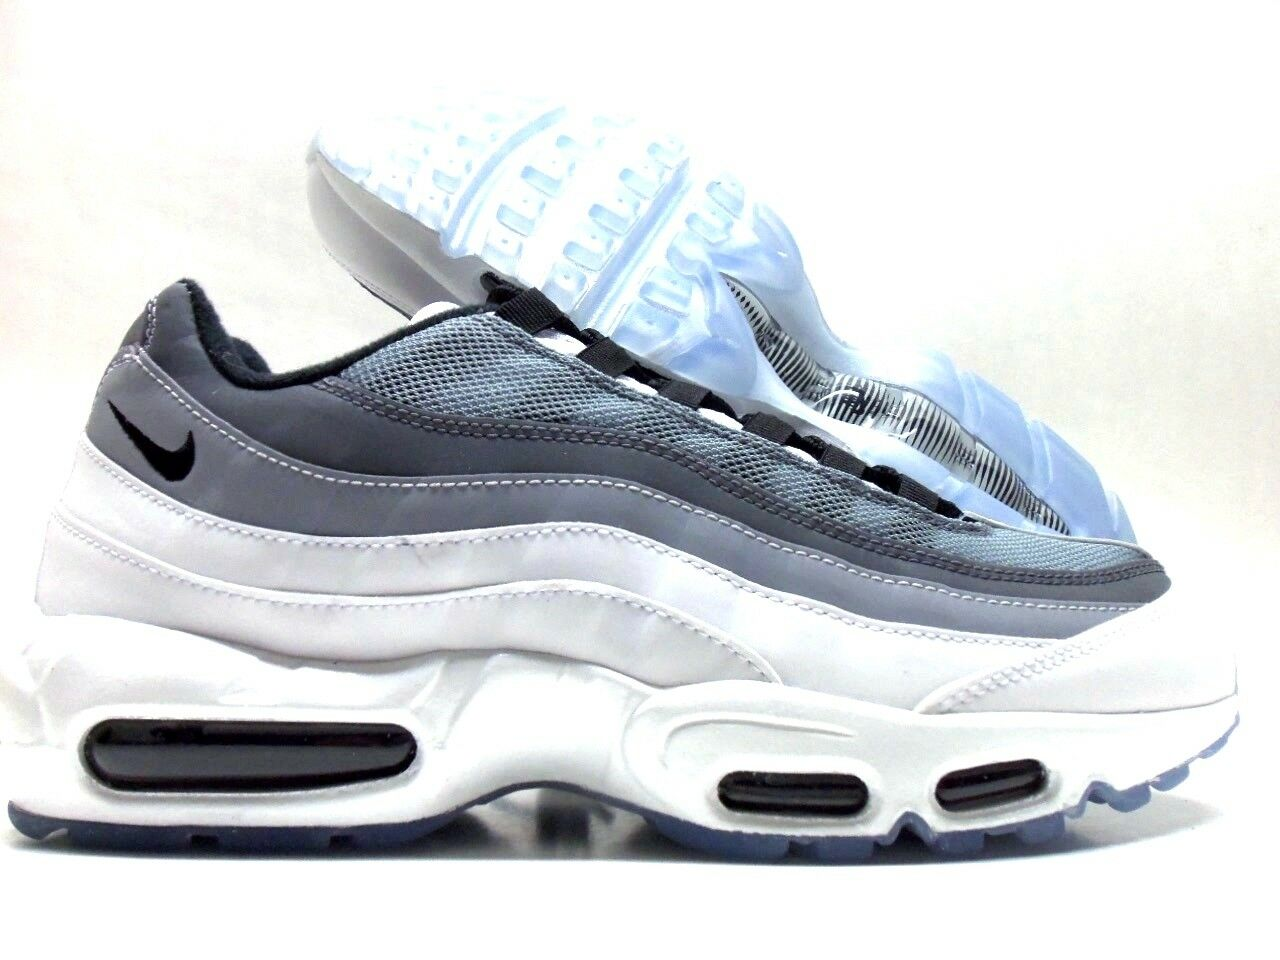 NIKE AIR MAX 95 ID WHITE/ANTHRACITE-COOL GREY-BLACK SIZE MEN'S 9.5 [818592-996]